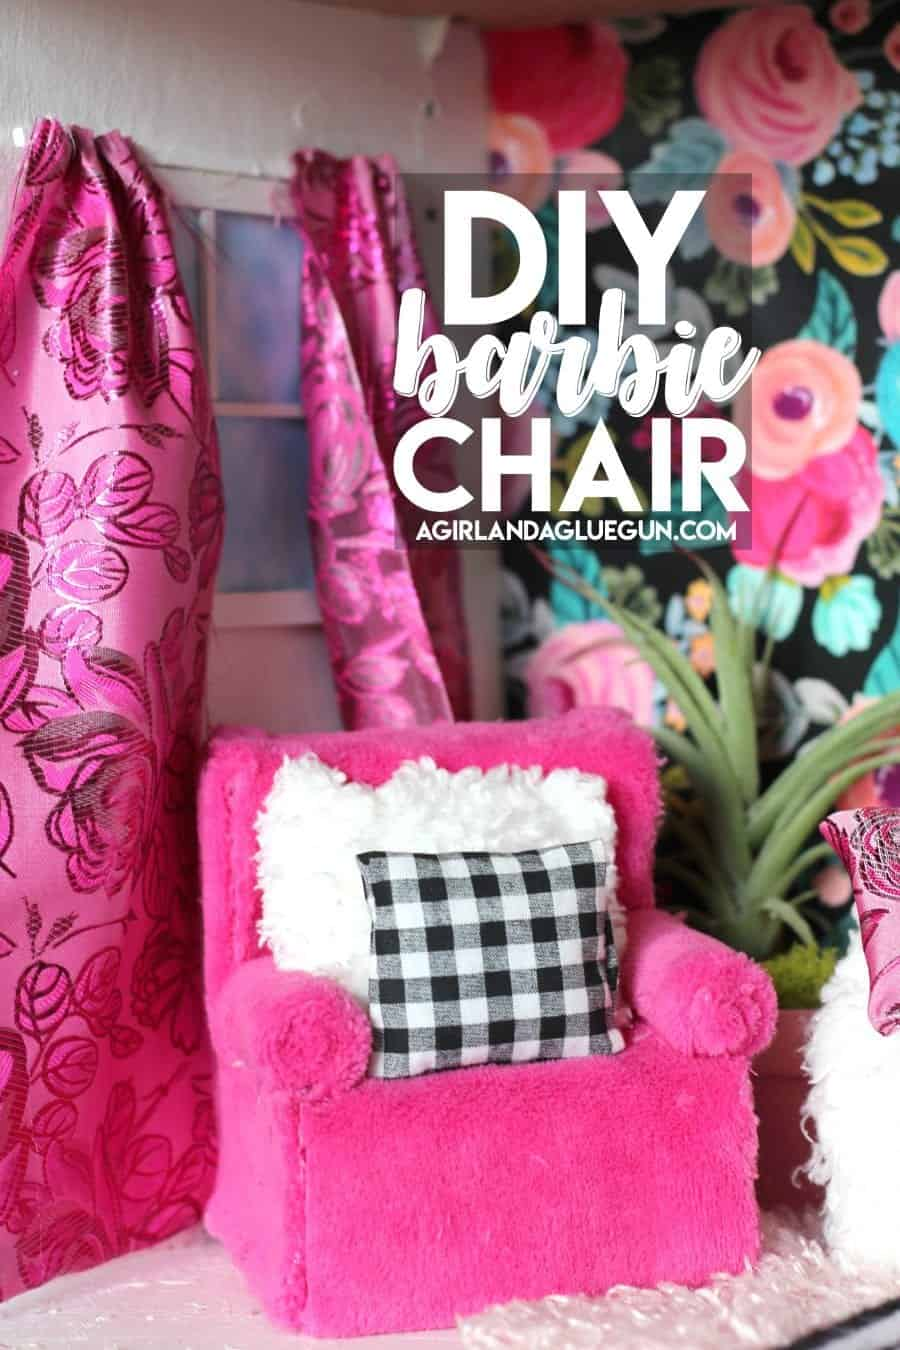 Barbie Bedroom In A Box: Barbie Couch And Chair DIY!